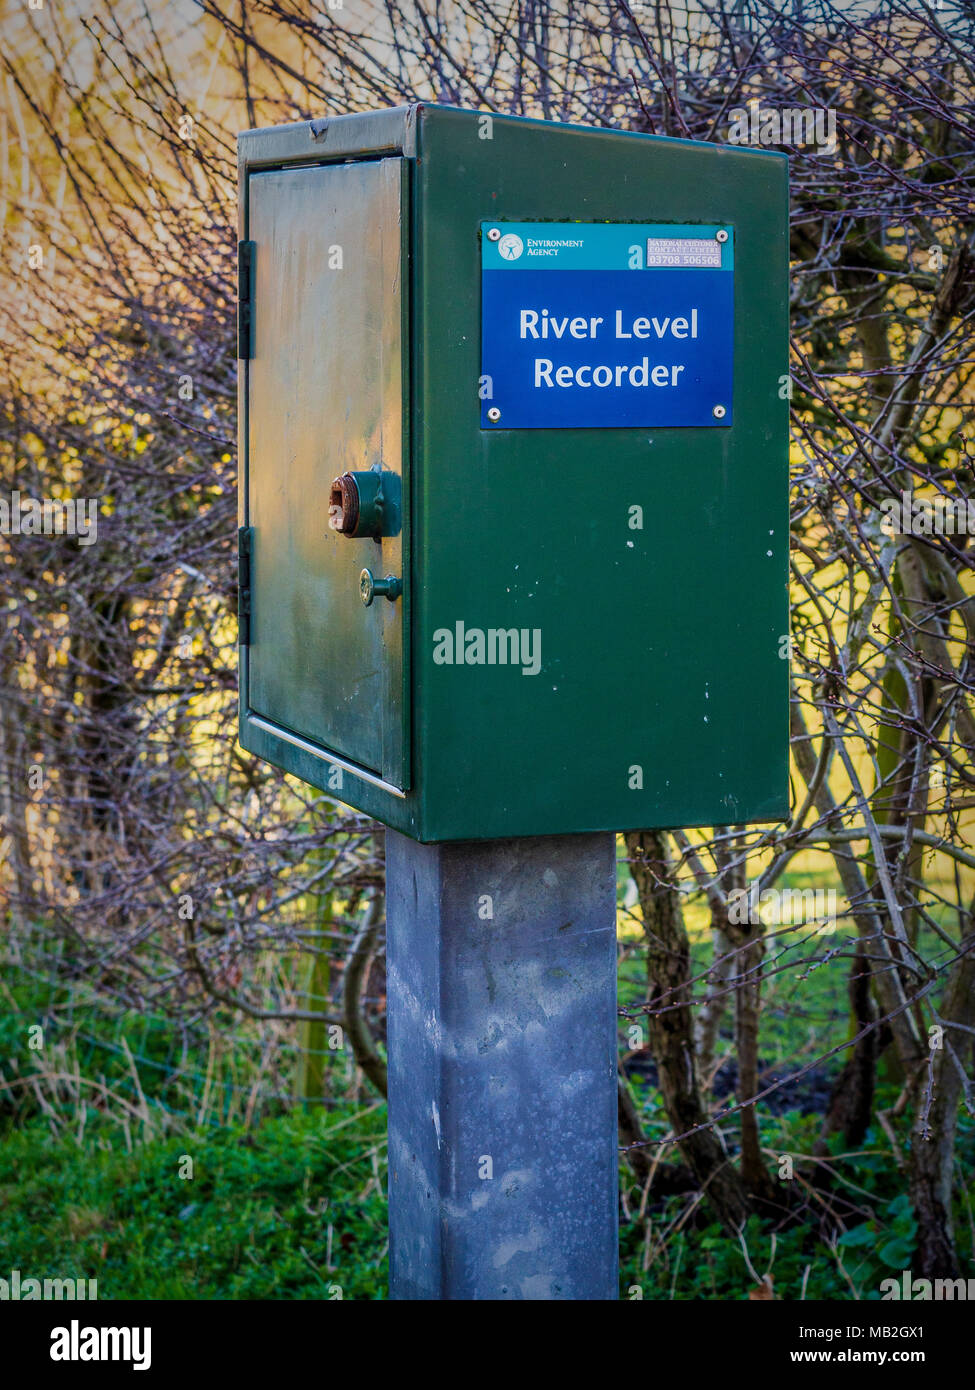 Environment Agency River Level Recorder at Cod Beck, Thirsk, North Yorkshire, UK. - Stock Image